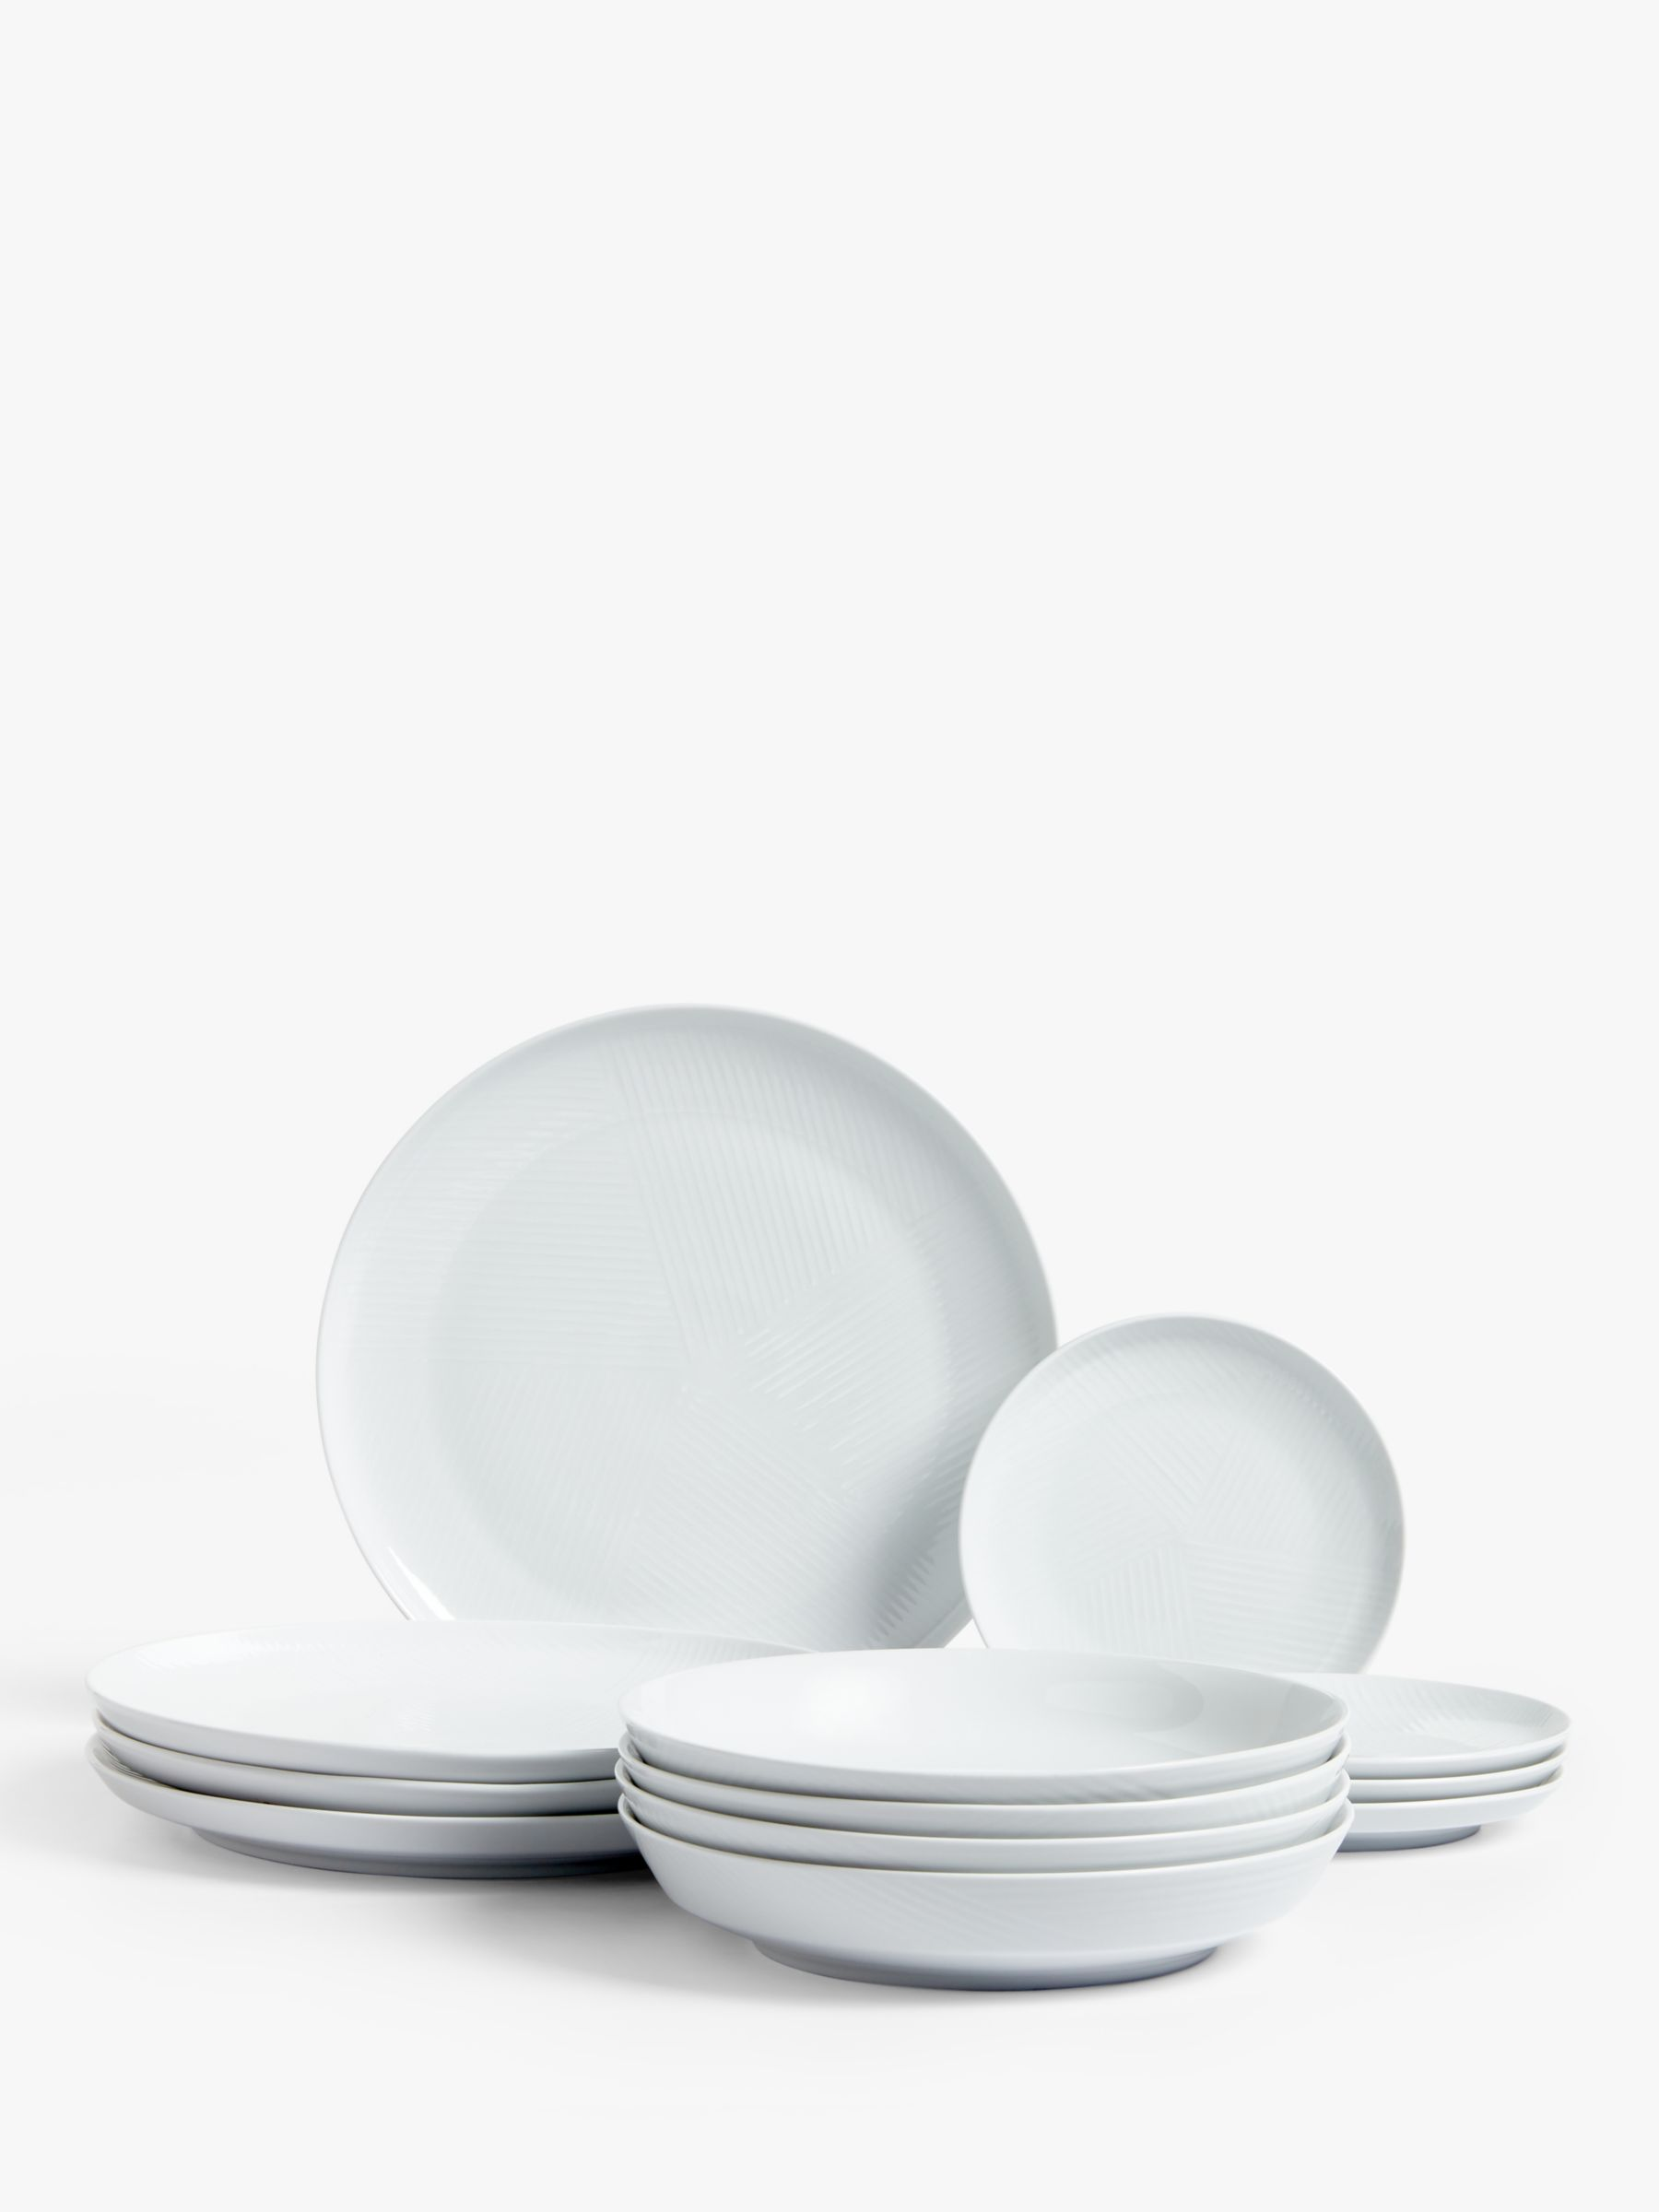 Design Project by John Lewis Design Project by John Lewis No.098 Couped Dinner Set, 12 Pieces, White